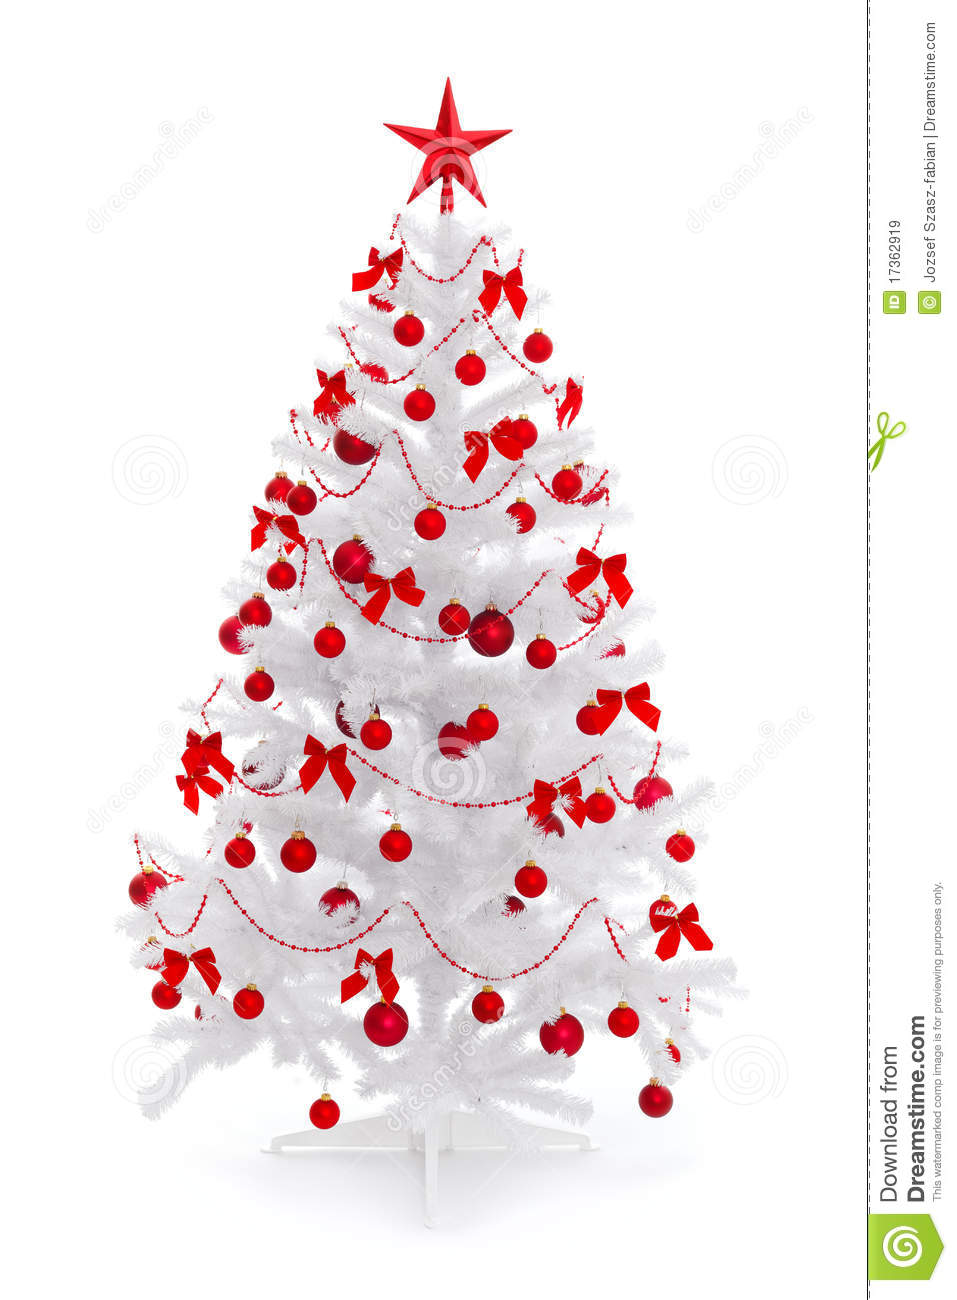 decoracao arvore de natal vermelha:Red with White Christmas Tree Decorations